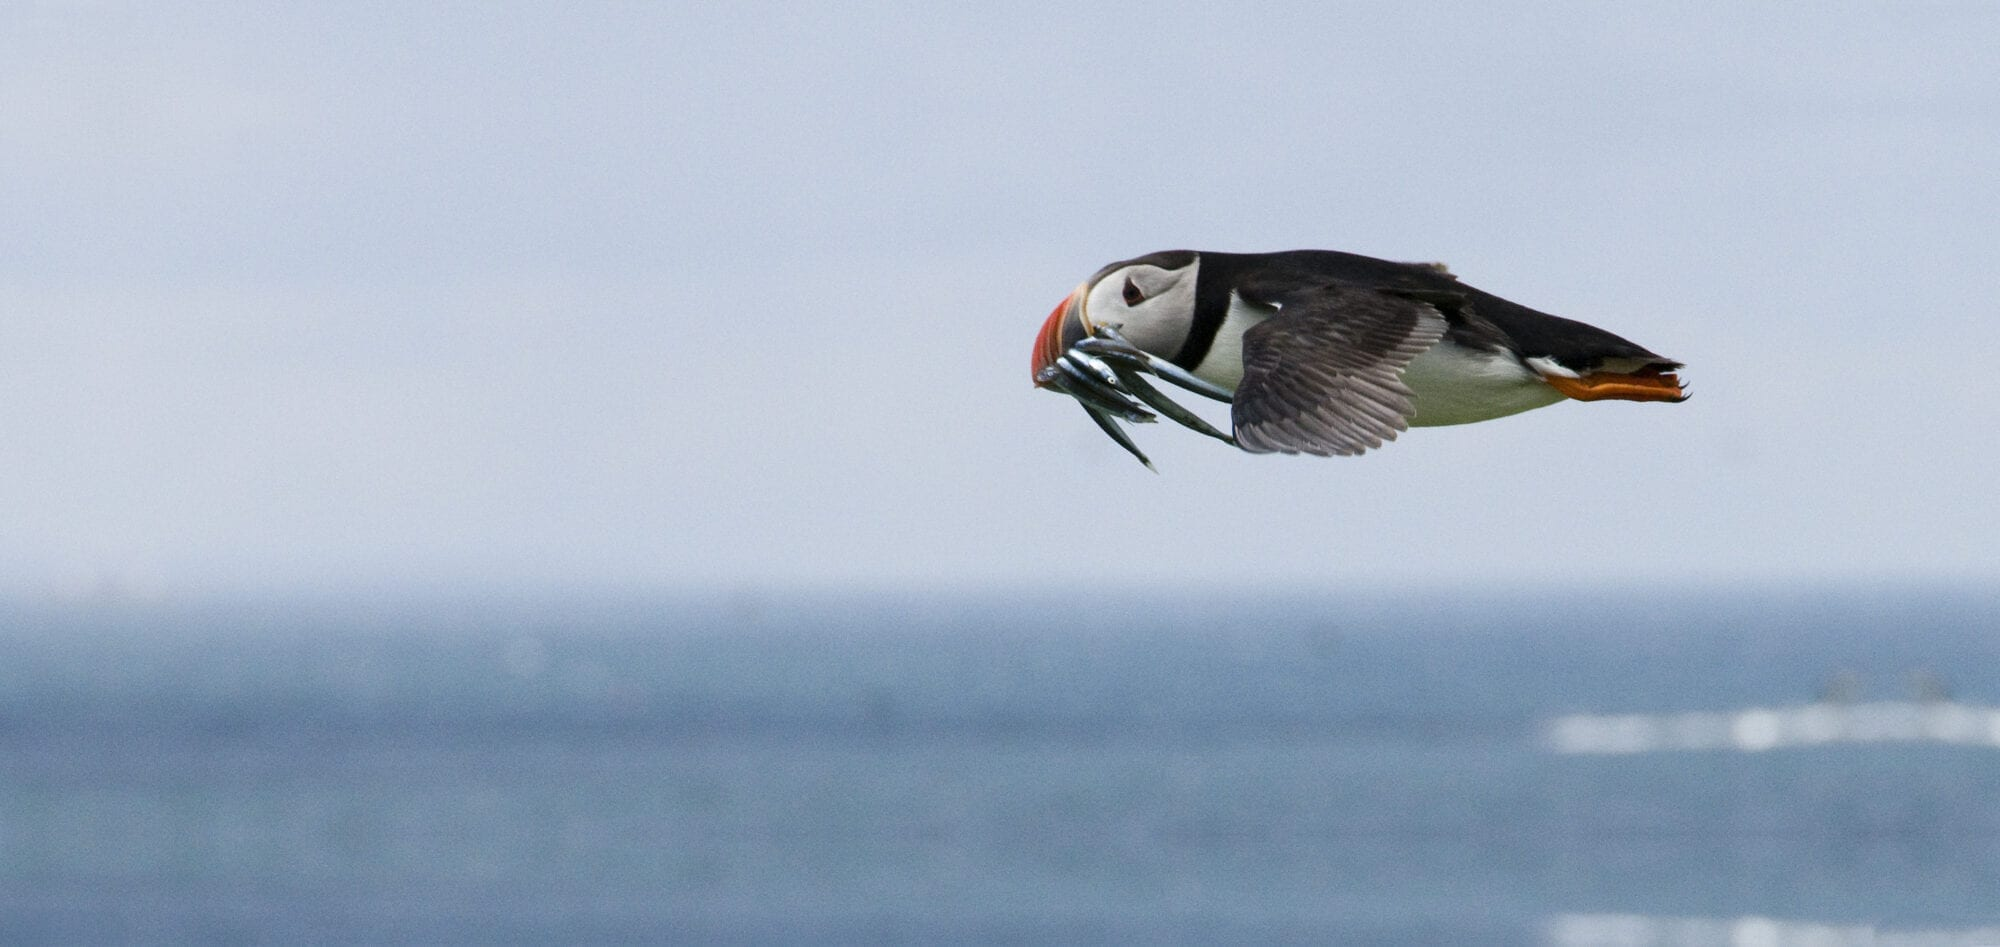 A puffin glides above the surface of the ocean, with several small fish in its colourful beak